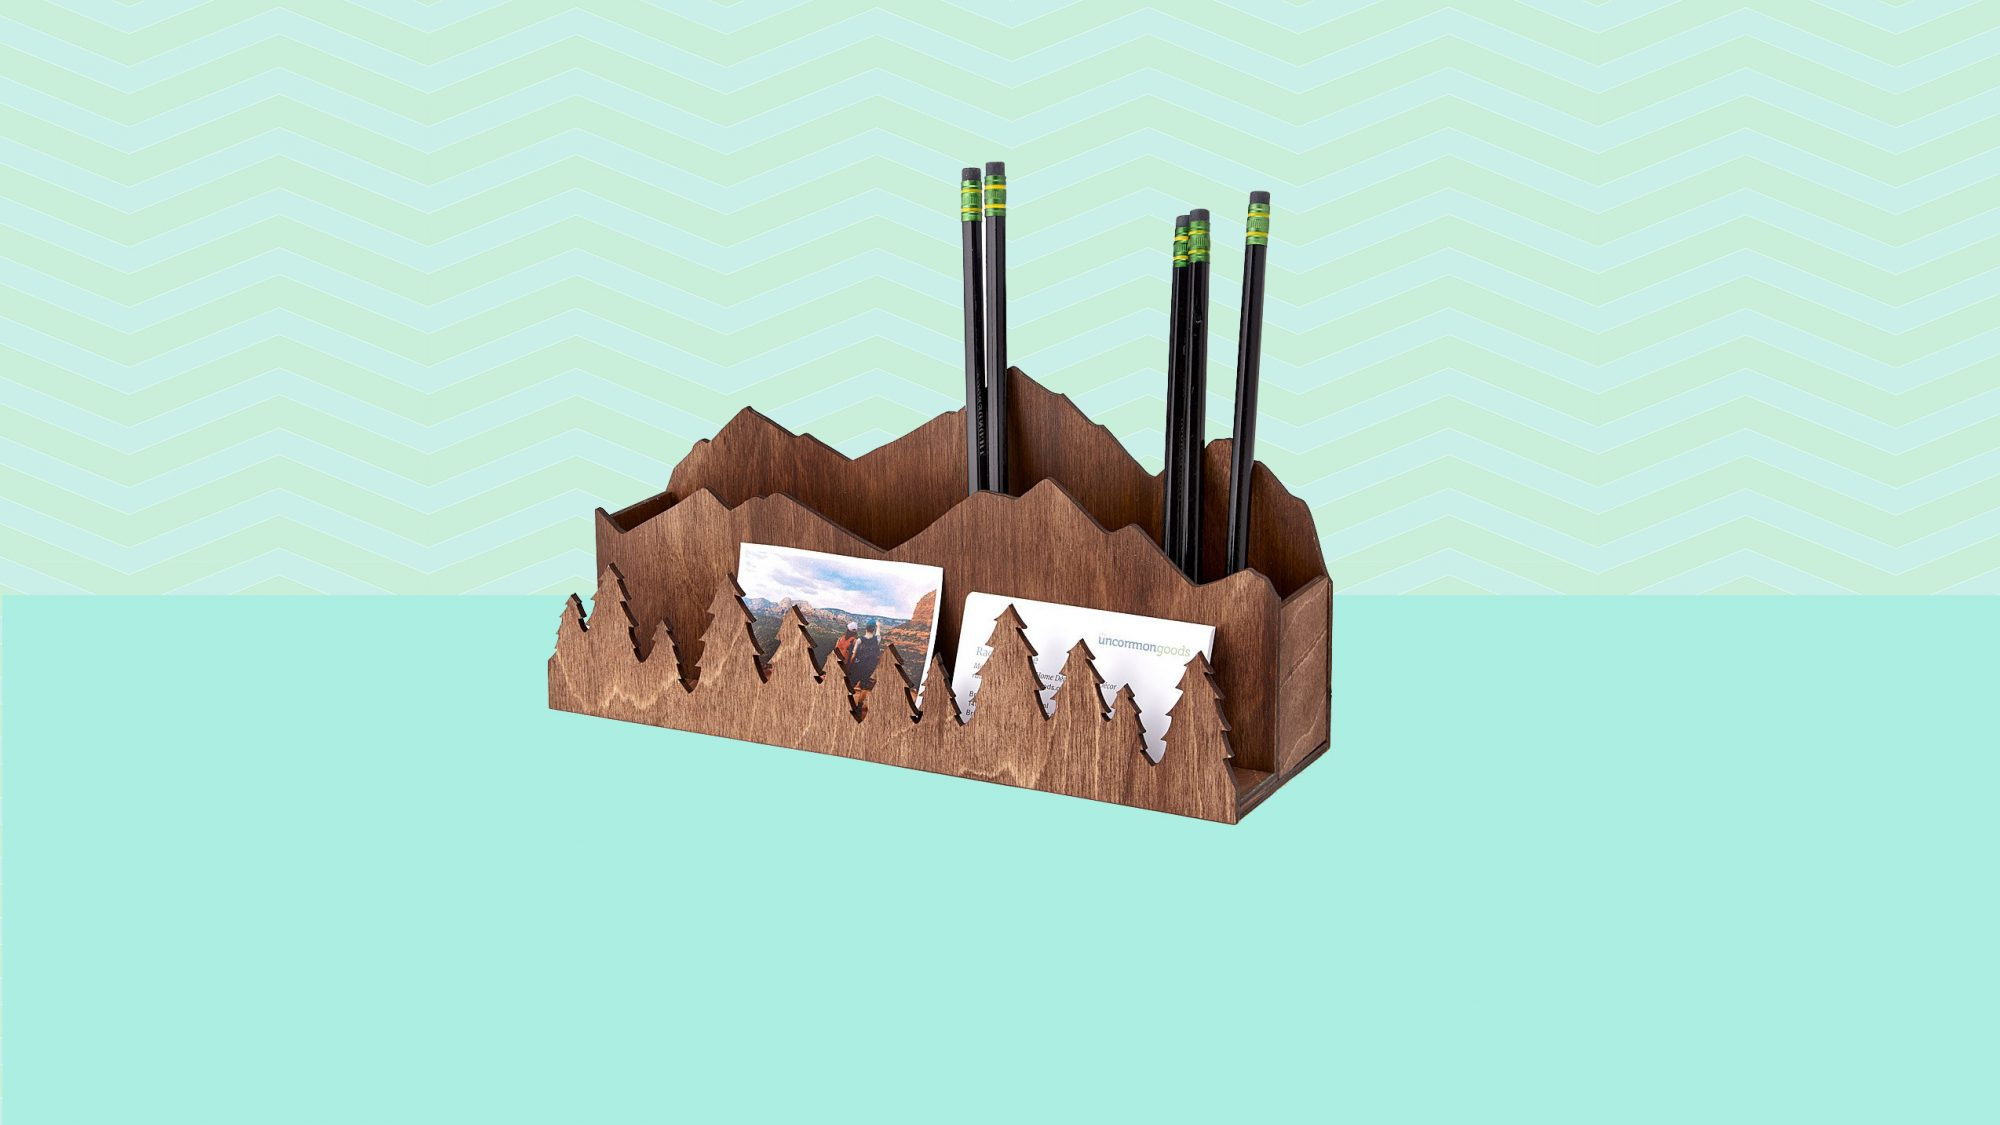 Best Desk Organizers, mountain range desk organizer